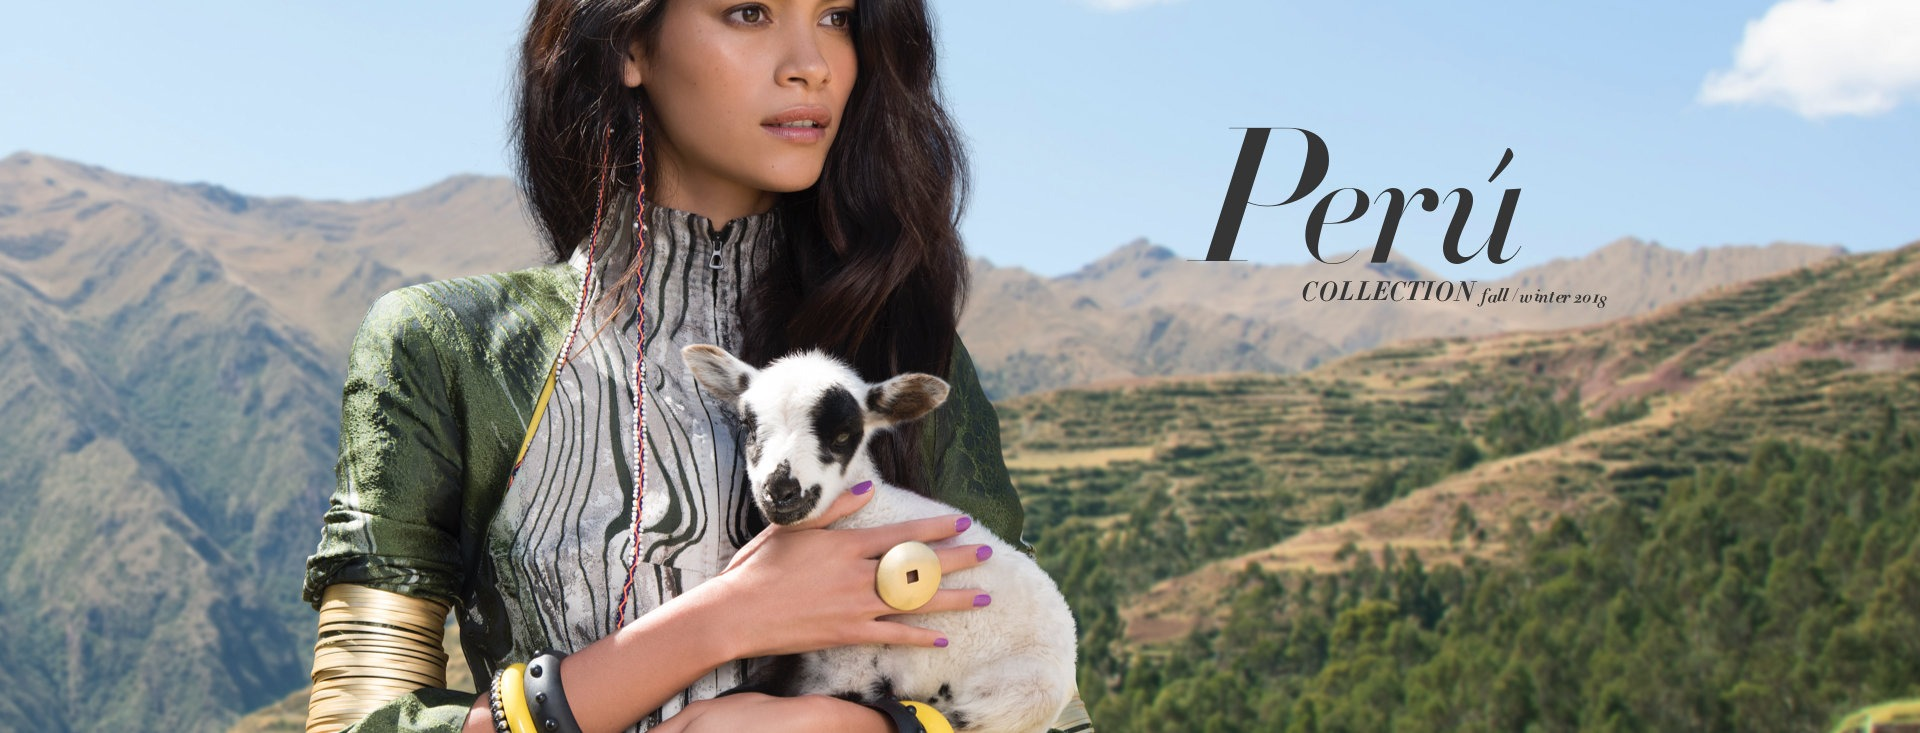 Shop the OPI Peru Collection